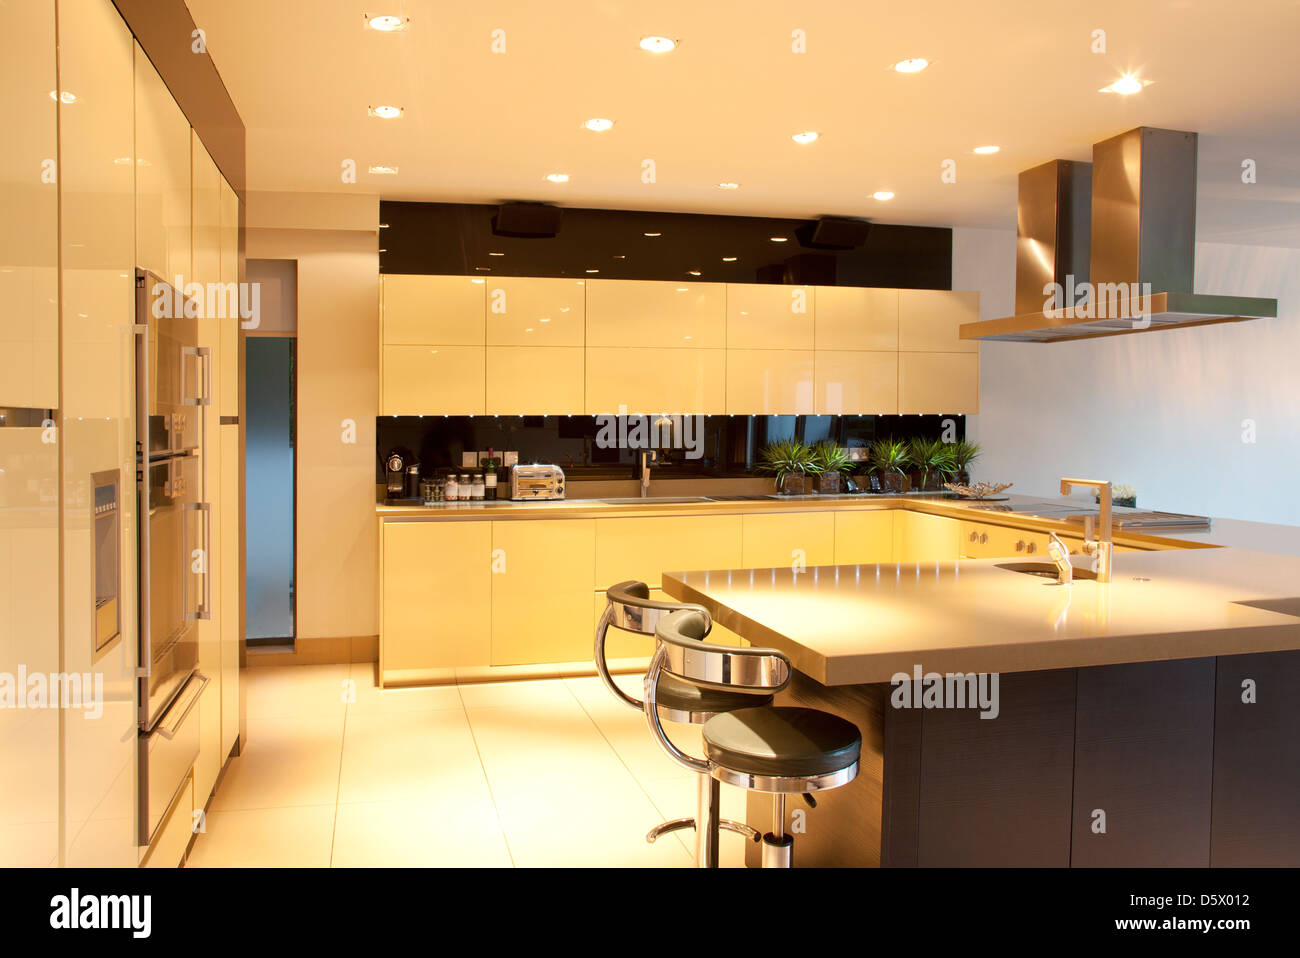 Counters and lighting in modern kitchen - Stock Image